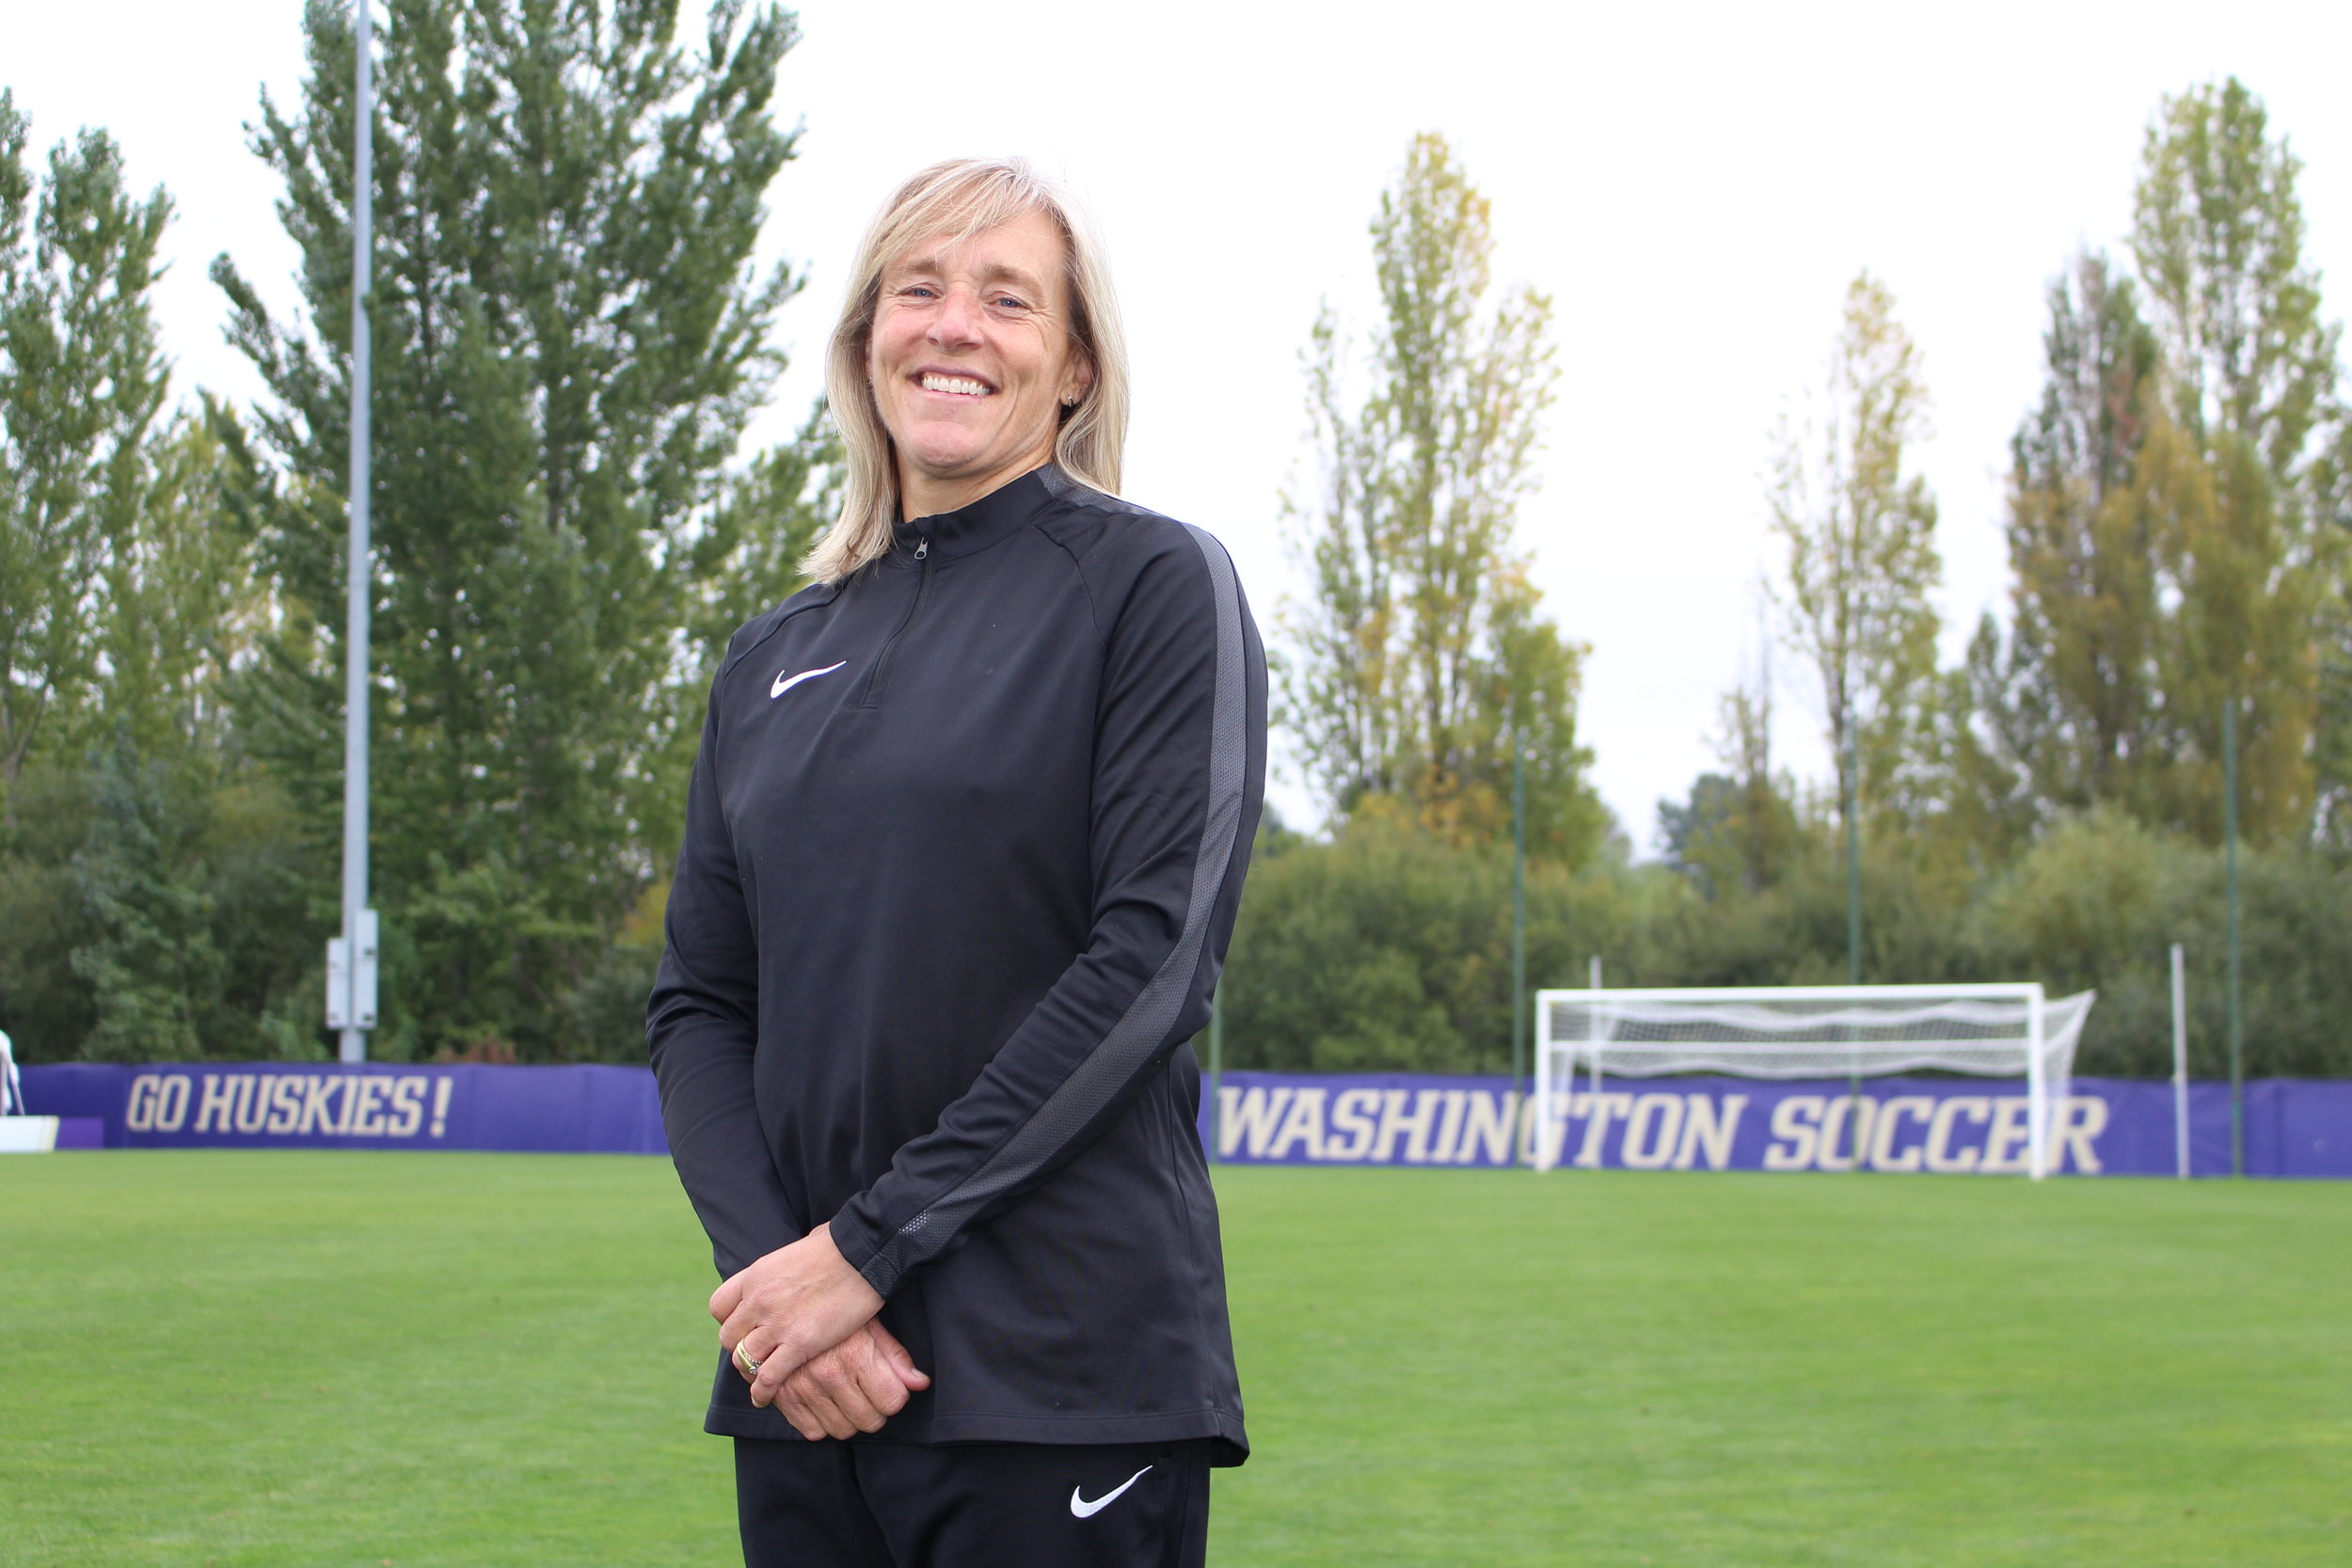 Amy Griffin on learning to 'play big' in soccer—and in life